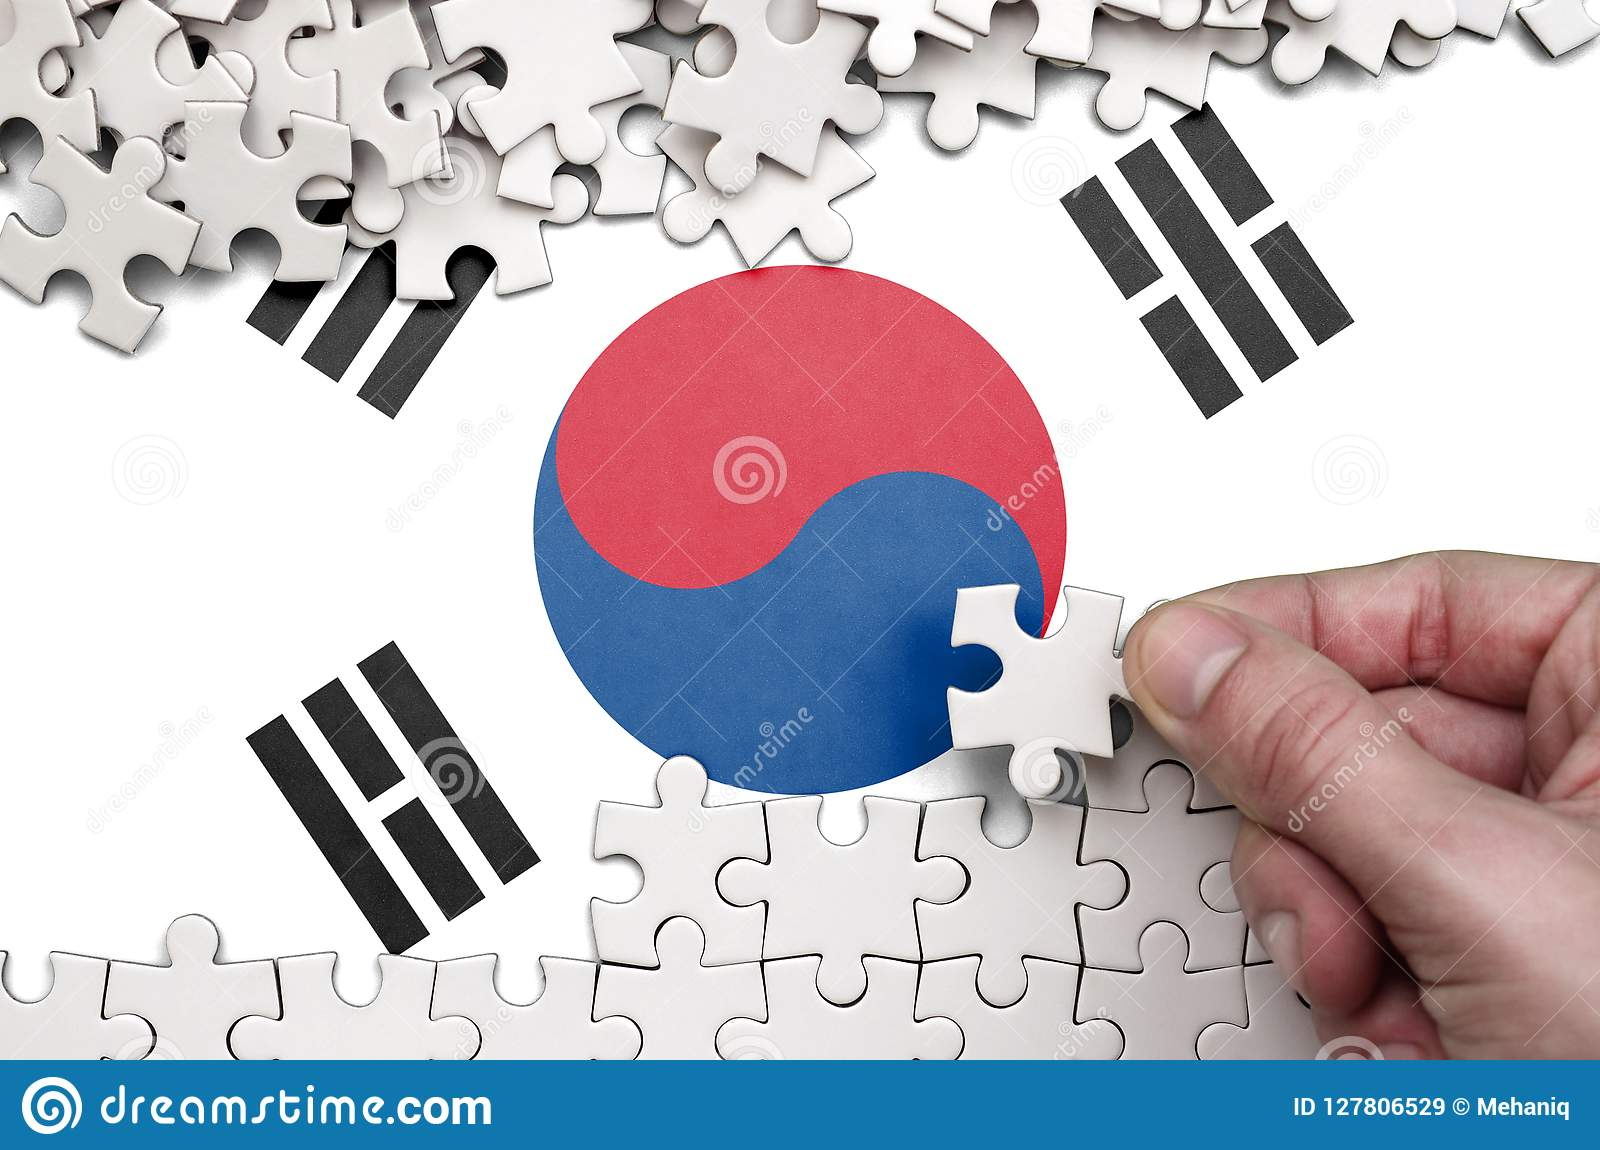 South Korea flag is depicted on a table on which the human hand folds a puzzle of white color